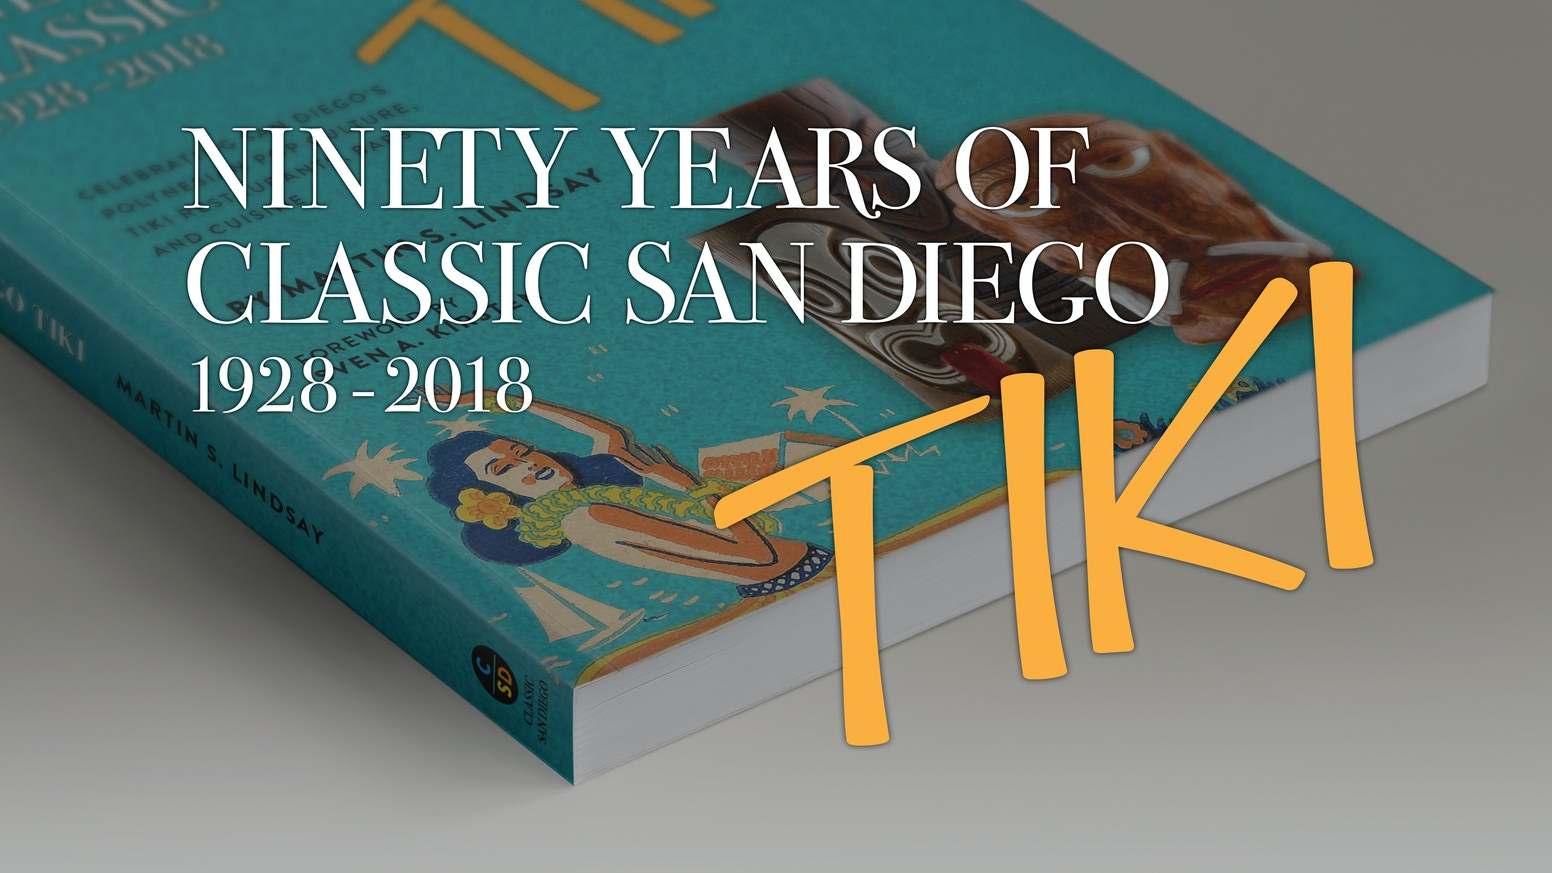 A full-color visual history and celebration of Polynesian pop culture, cuisine, restaurants and bars from San Diego and Tijuana.